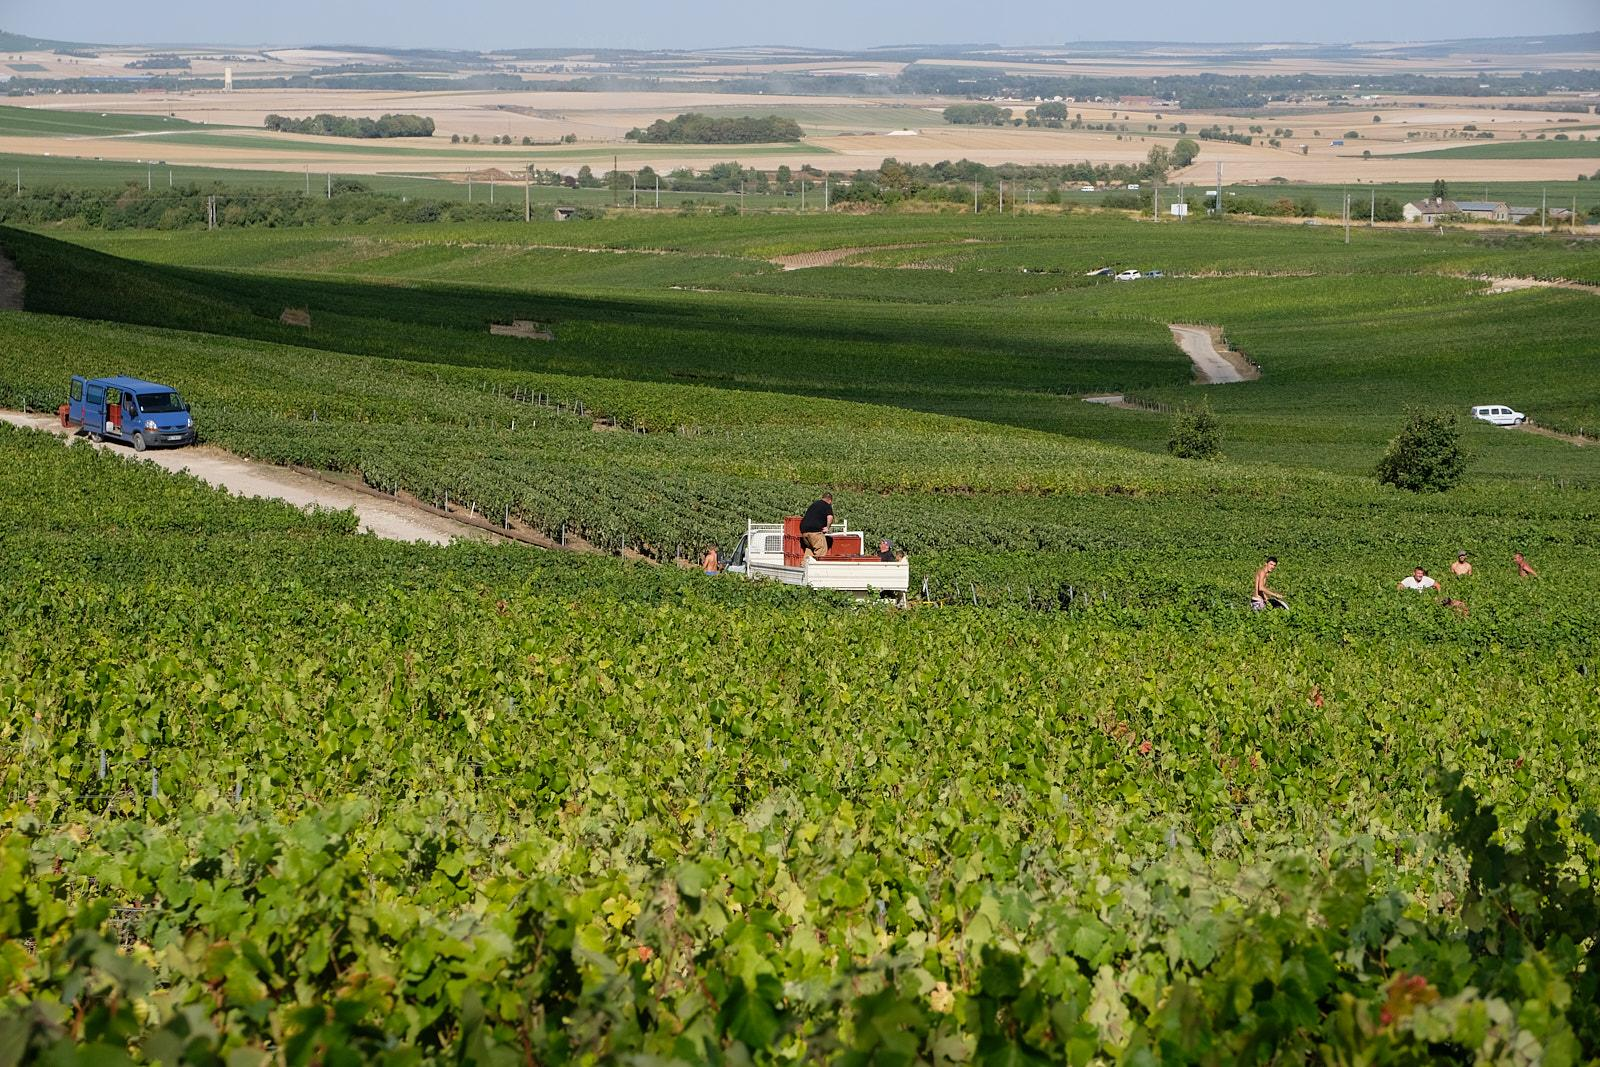 Fields full of grapes are waiting to be picked to make champagne in Rilly la Montagne in France's Champagne region